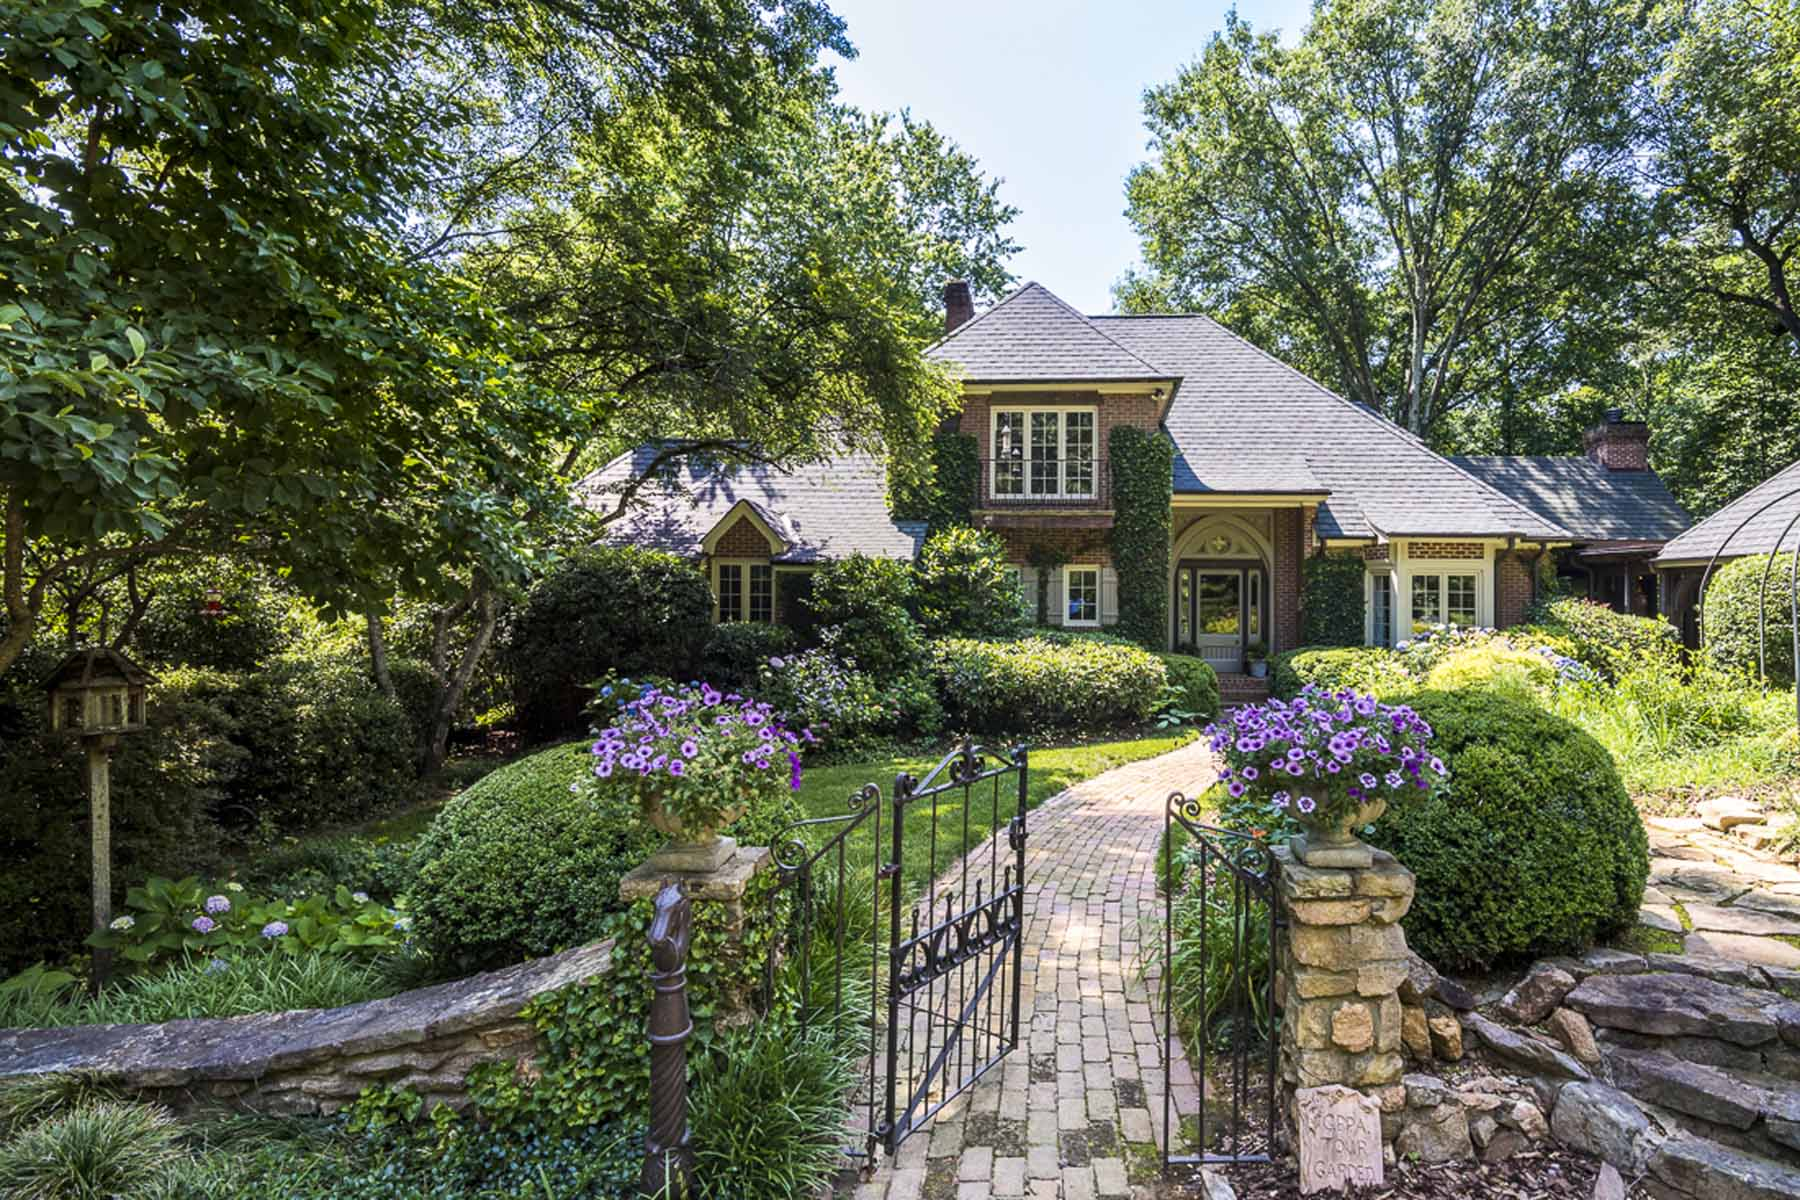 一戸建て のために 売買 アット Enchanting English Country Estate in Sandy Springs 5219 Riverview Road NW Sandy Springs, Atlanta, ジョージア, 30327 アメリカ合衆国